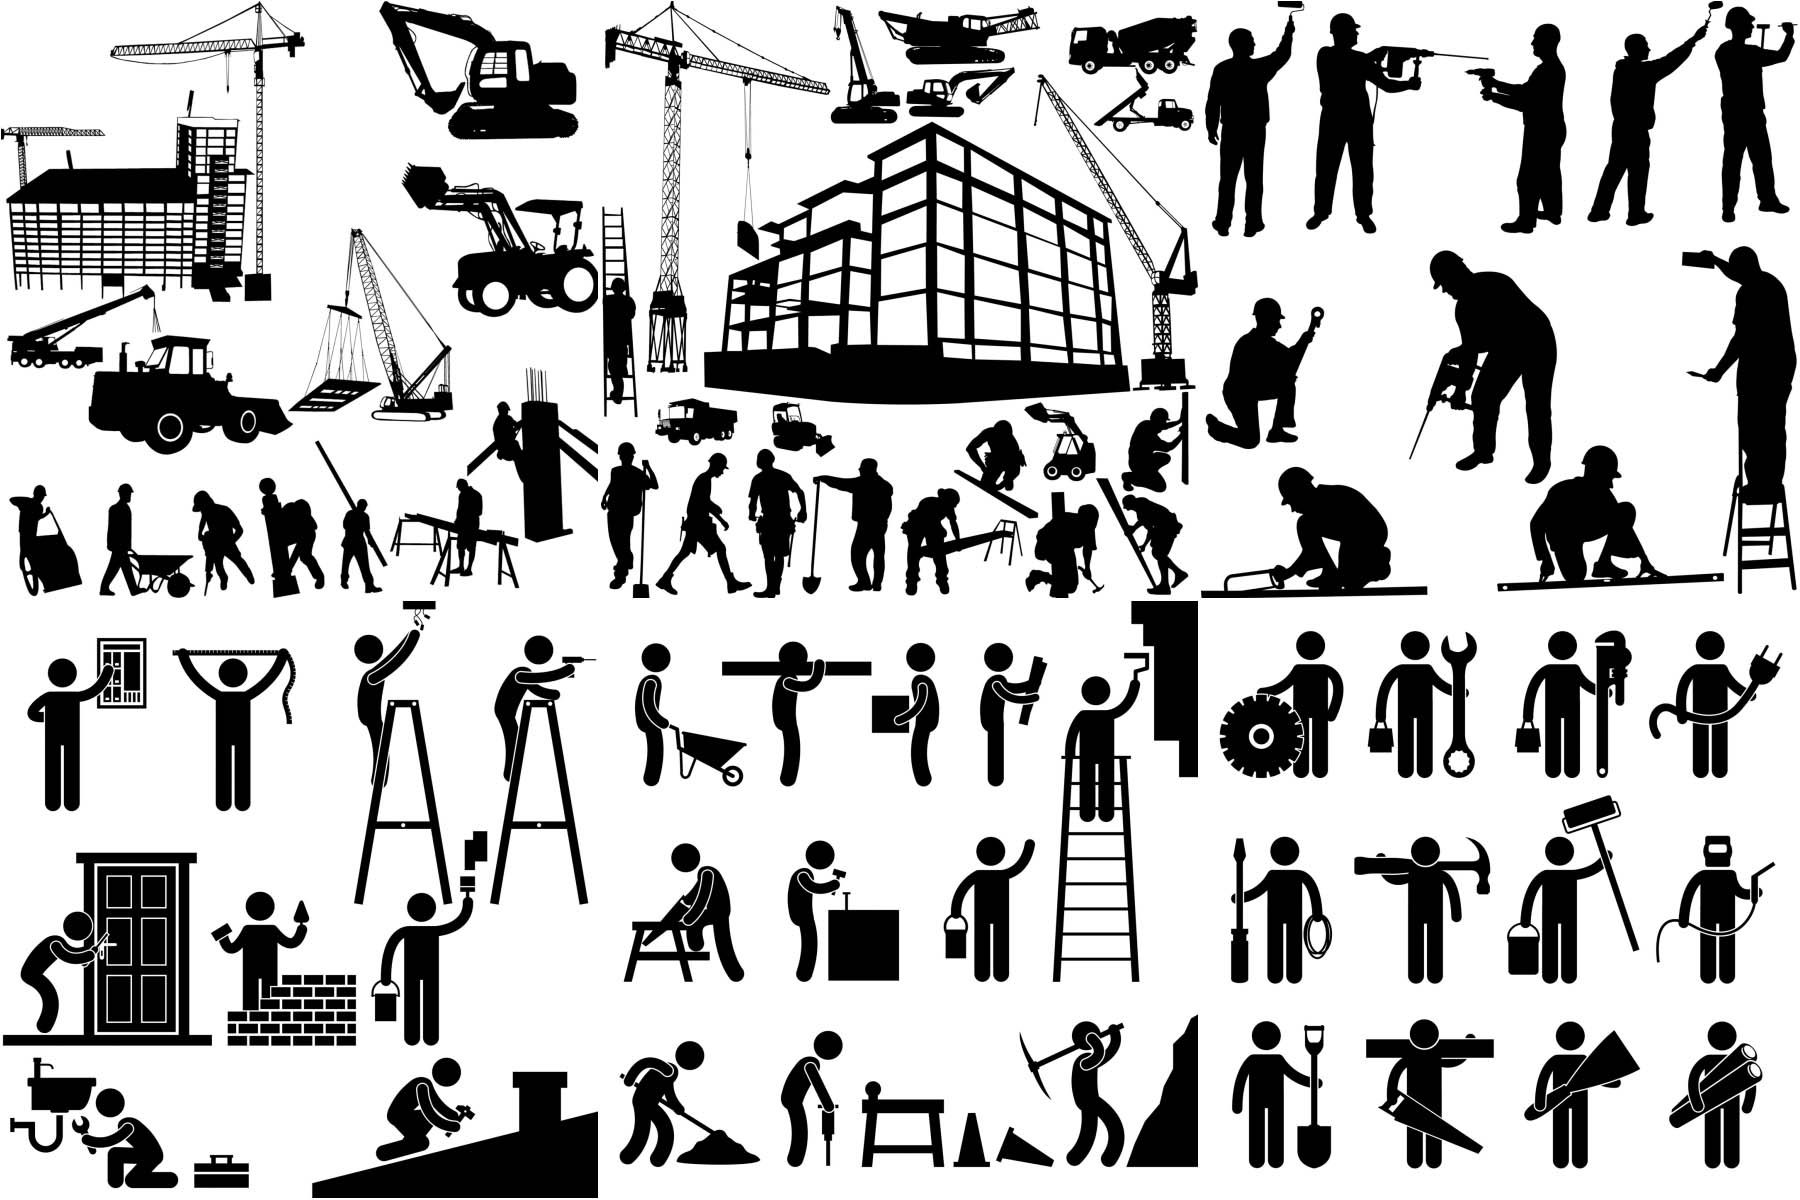 Worker Silhouette Building And Construction Equipment